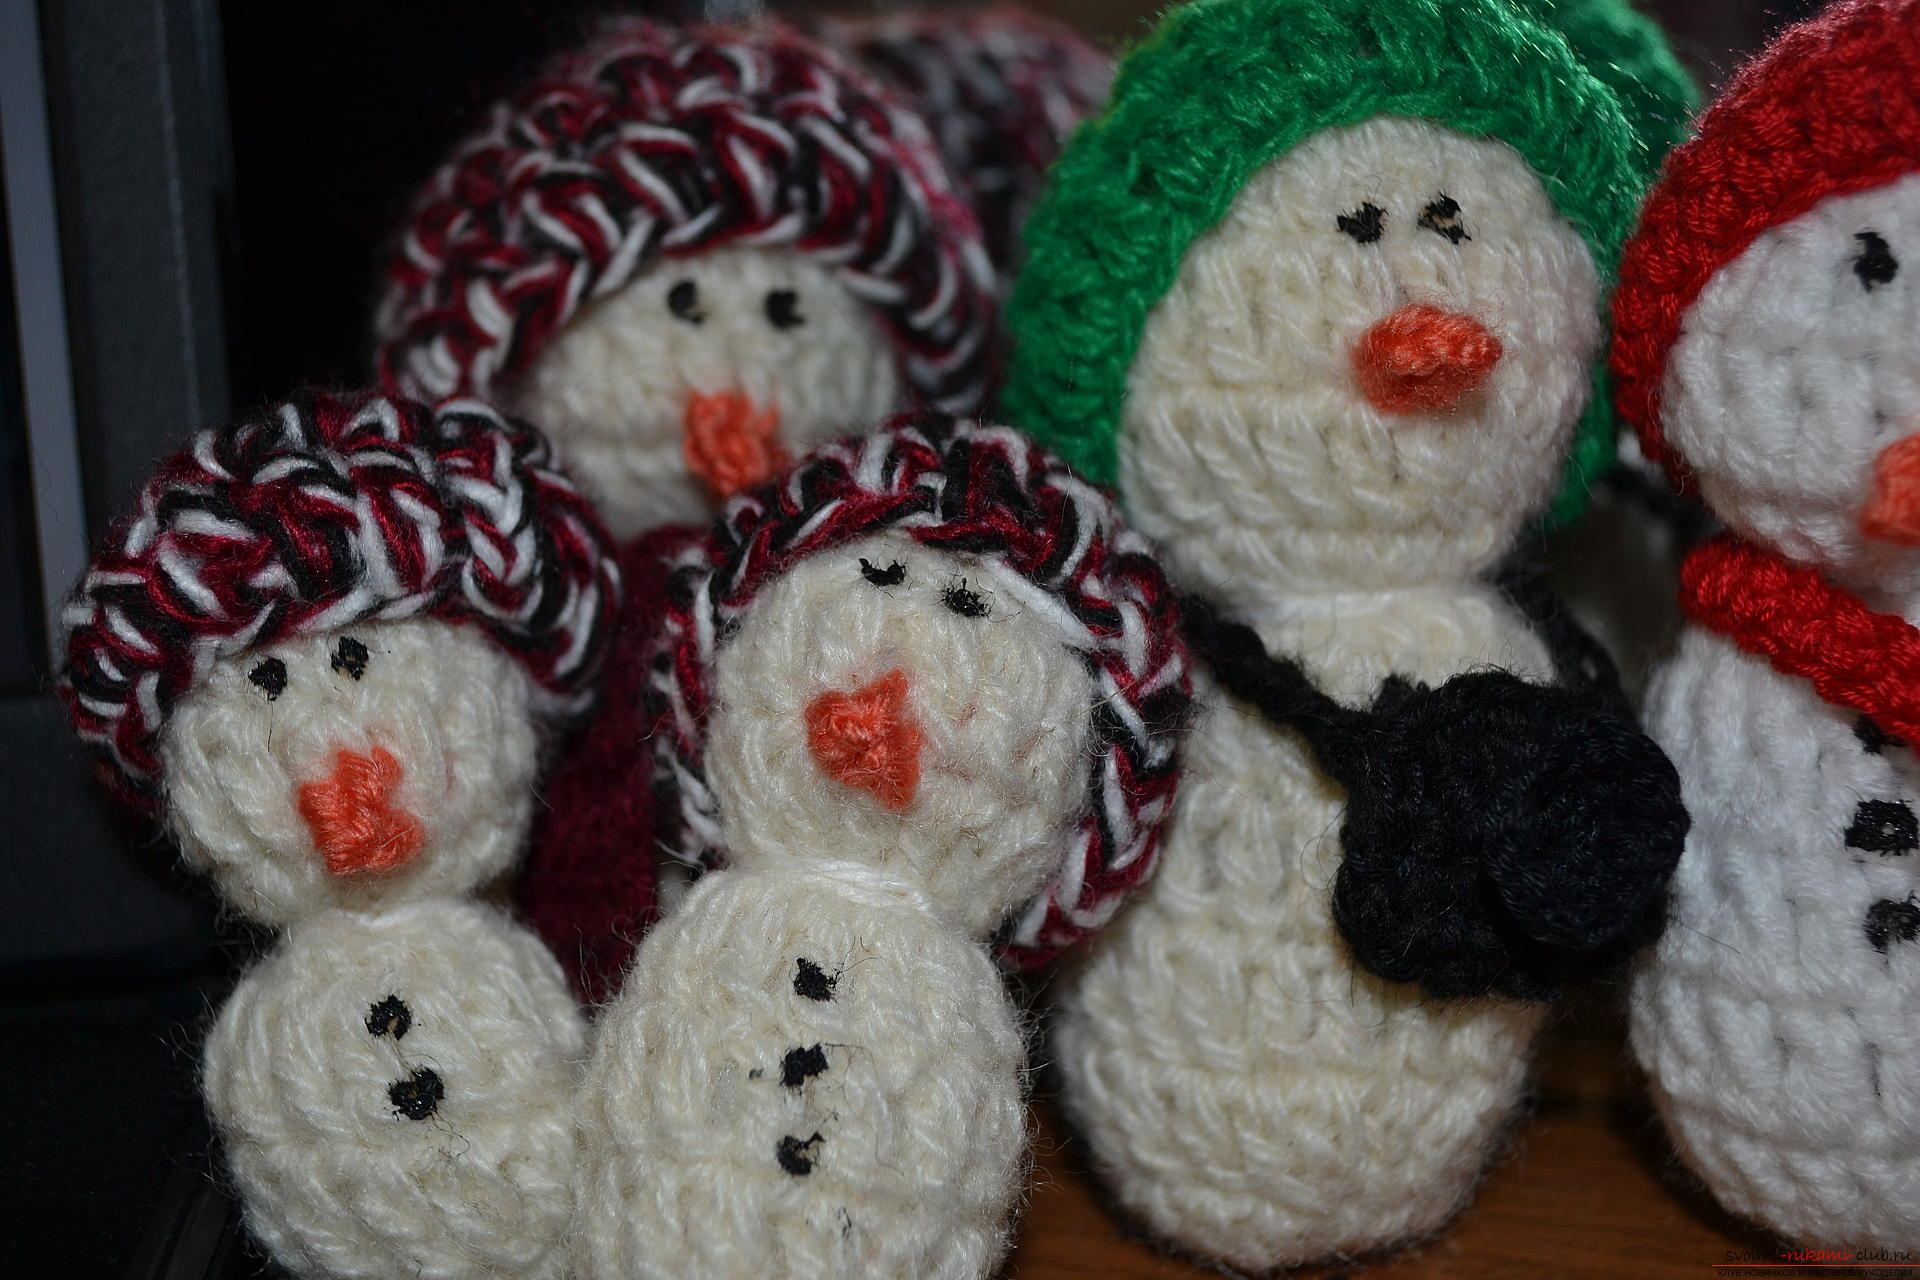 A master class with a photo and description will teach the crocheting of a snowman, which will be understandable for beginners. Photo # 2